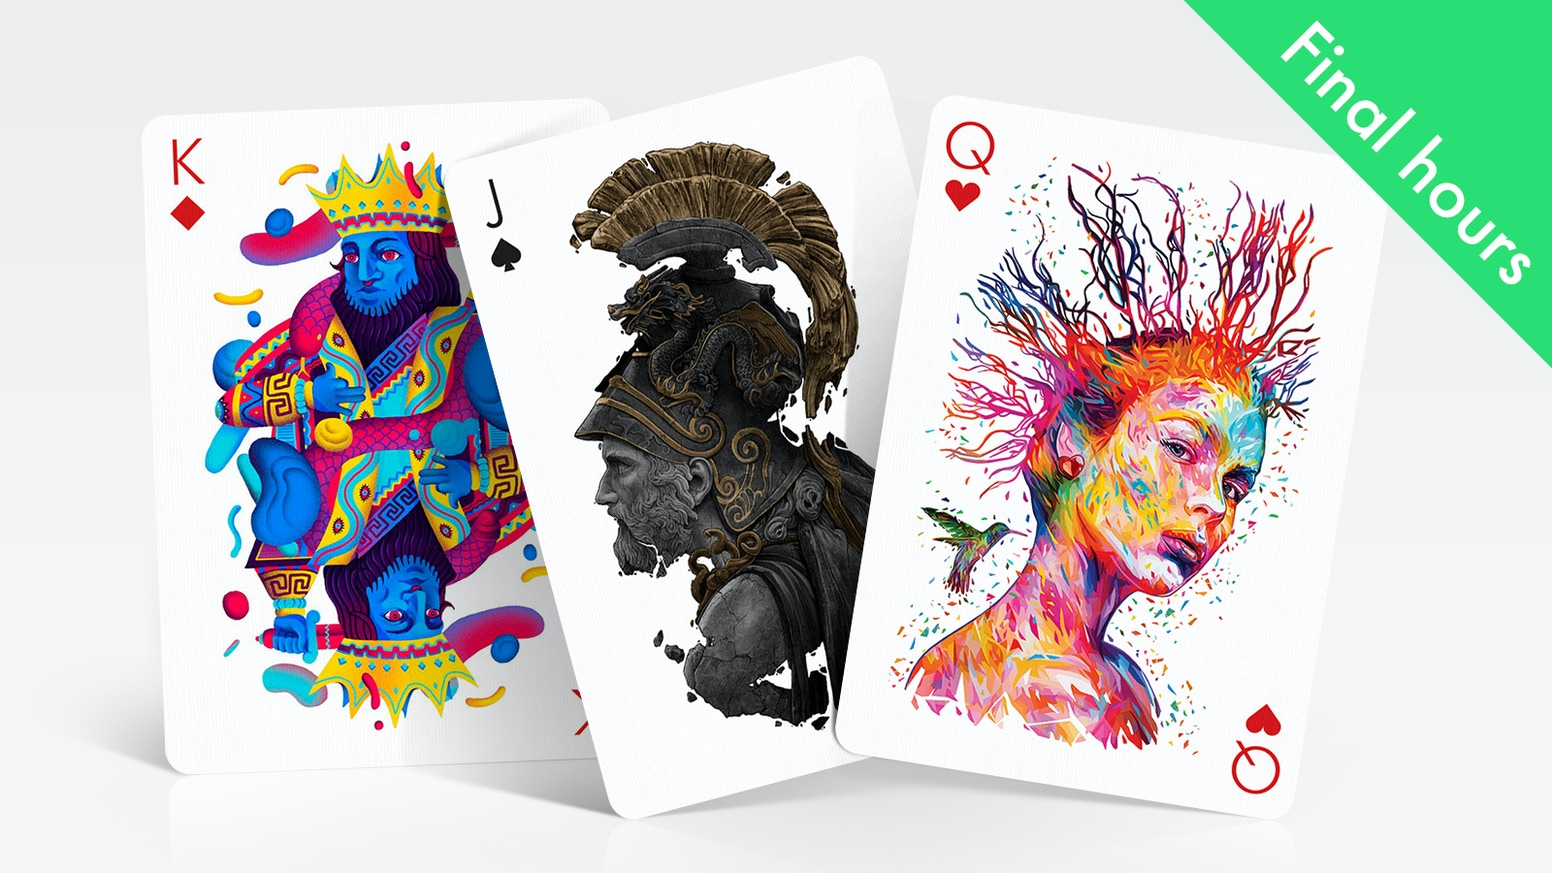 Playing arts playing cards designed by different artists by unique playing card decks where each card is illustrated by different international artist in his distinct kristyandbryce Image collections